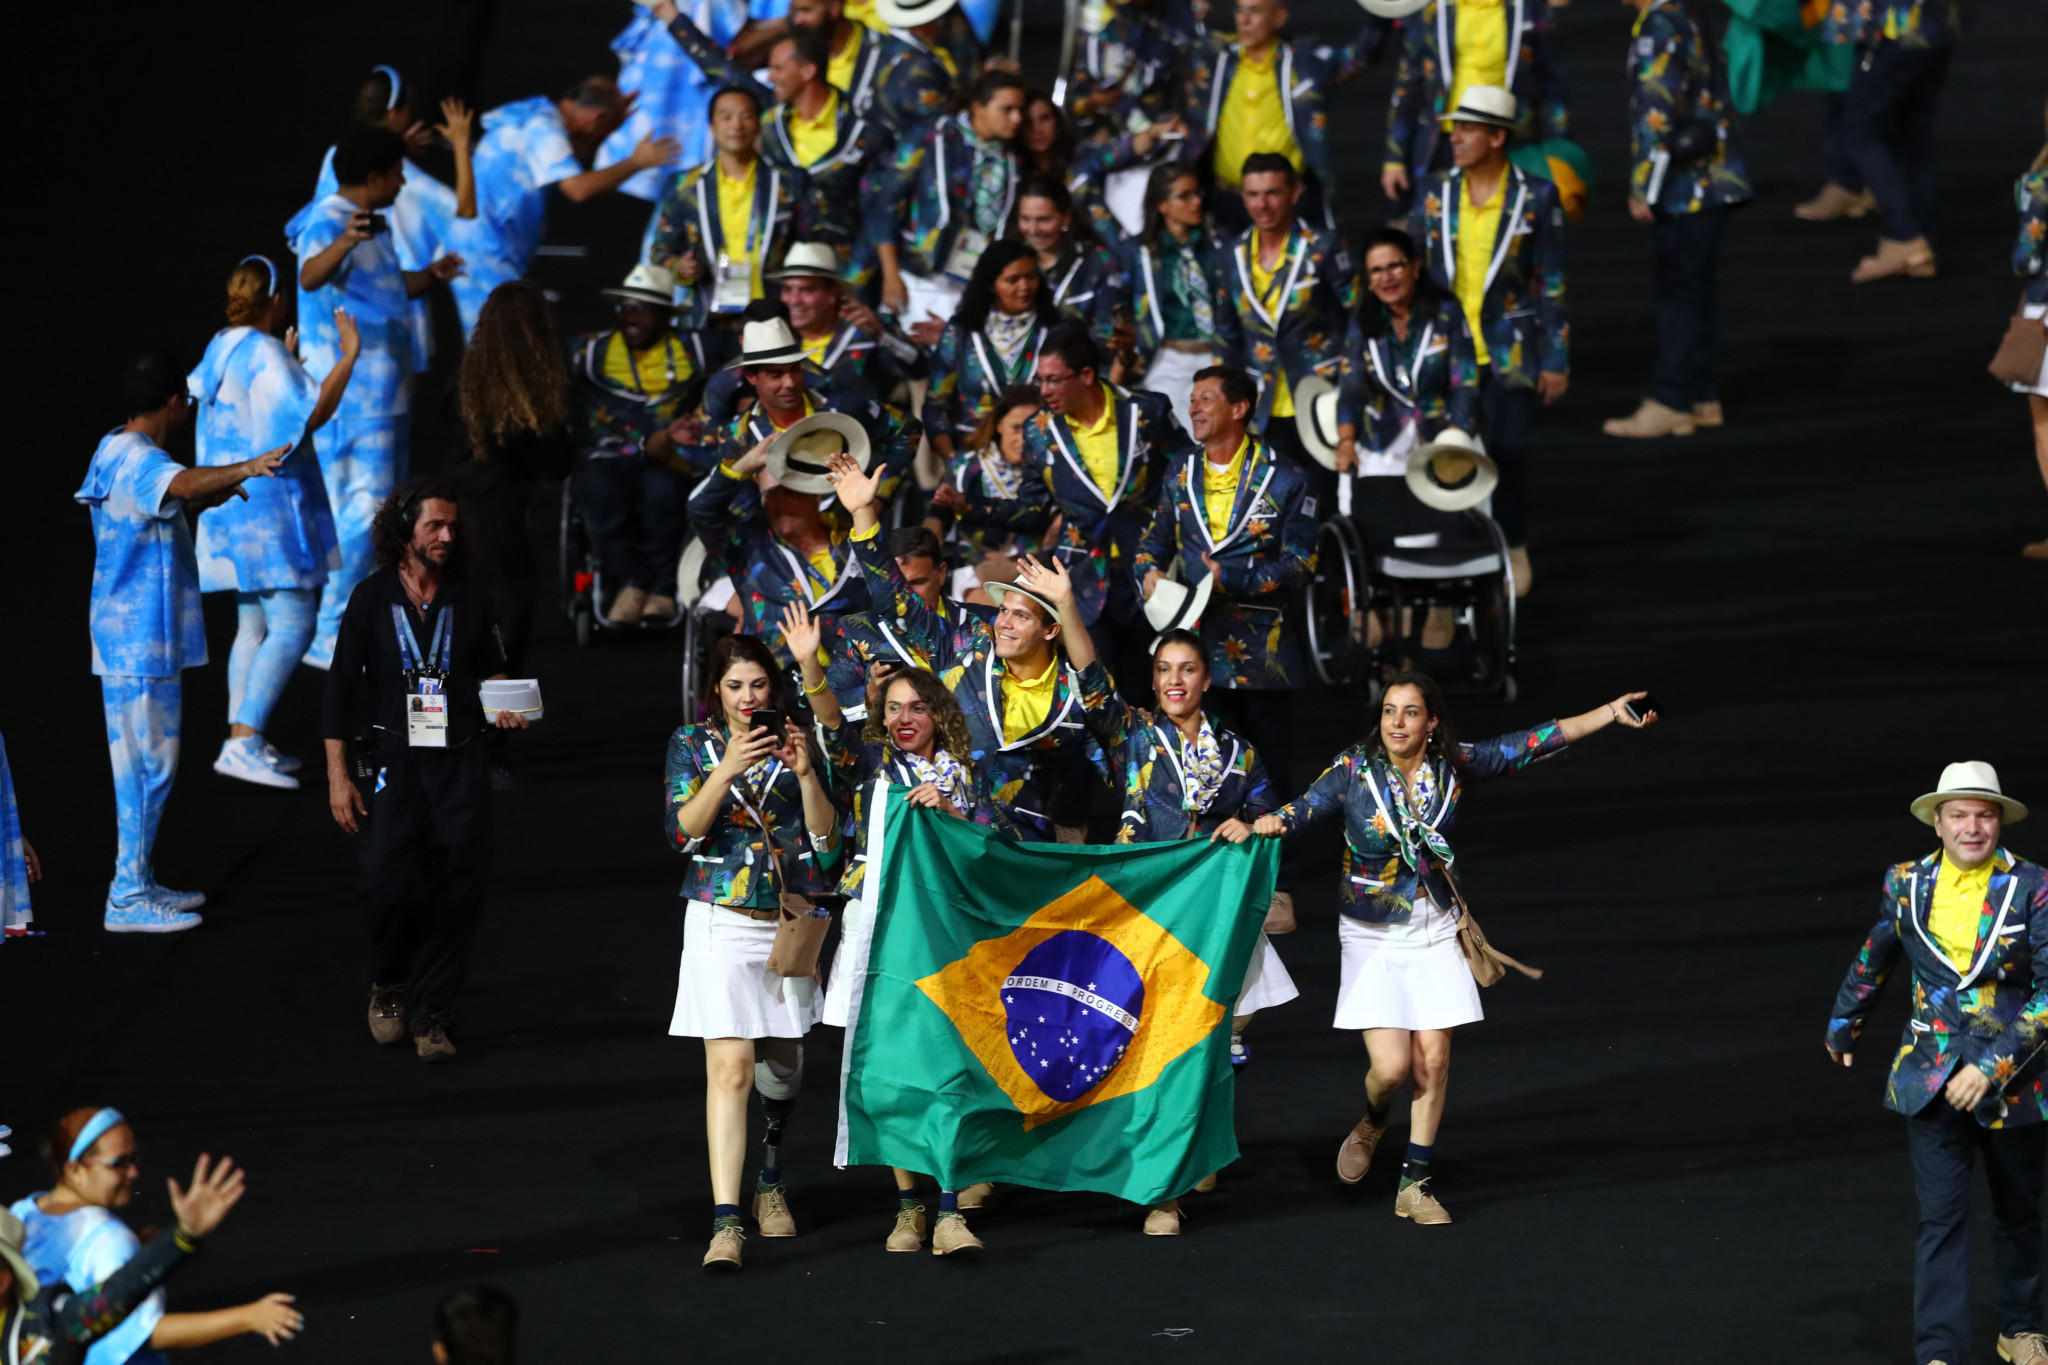 Only Brazil's Rio 2016 delegation is bigger than the team the Brazilian Paralympic Committee is sending to Tokyo 2020 ©Getty Images